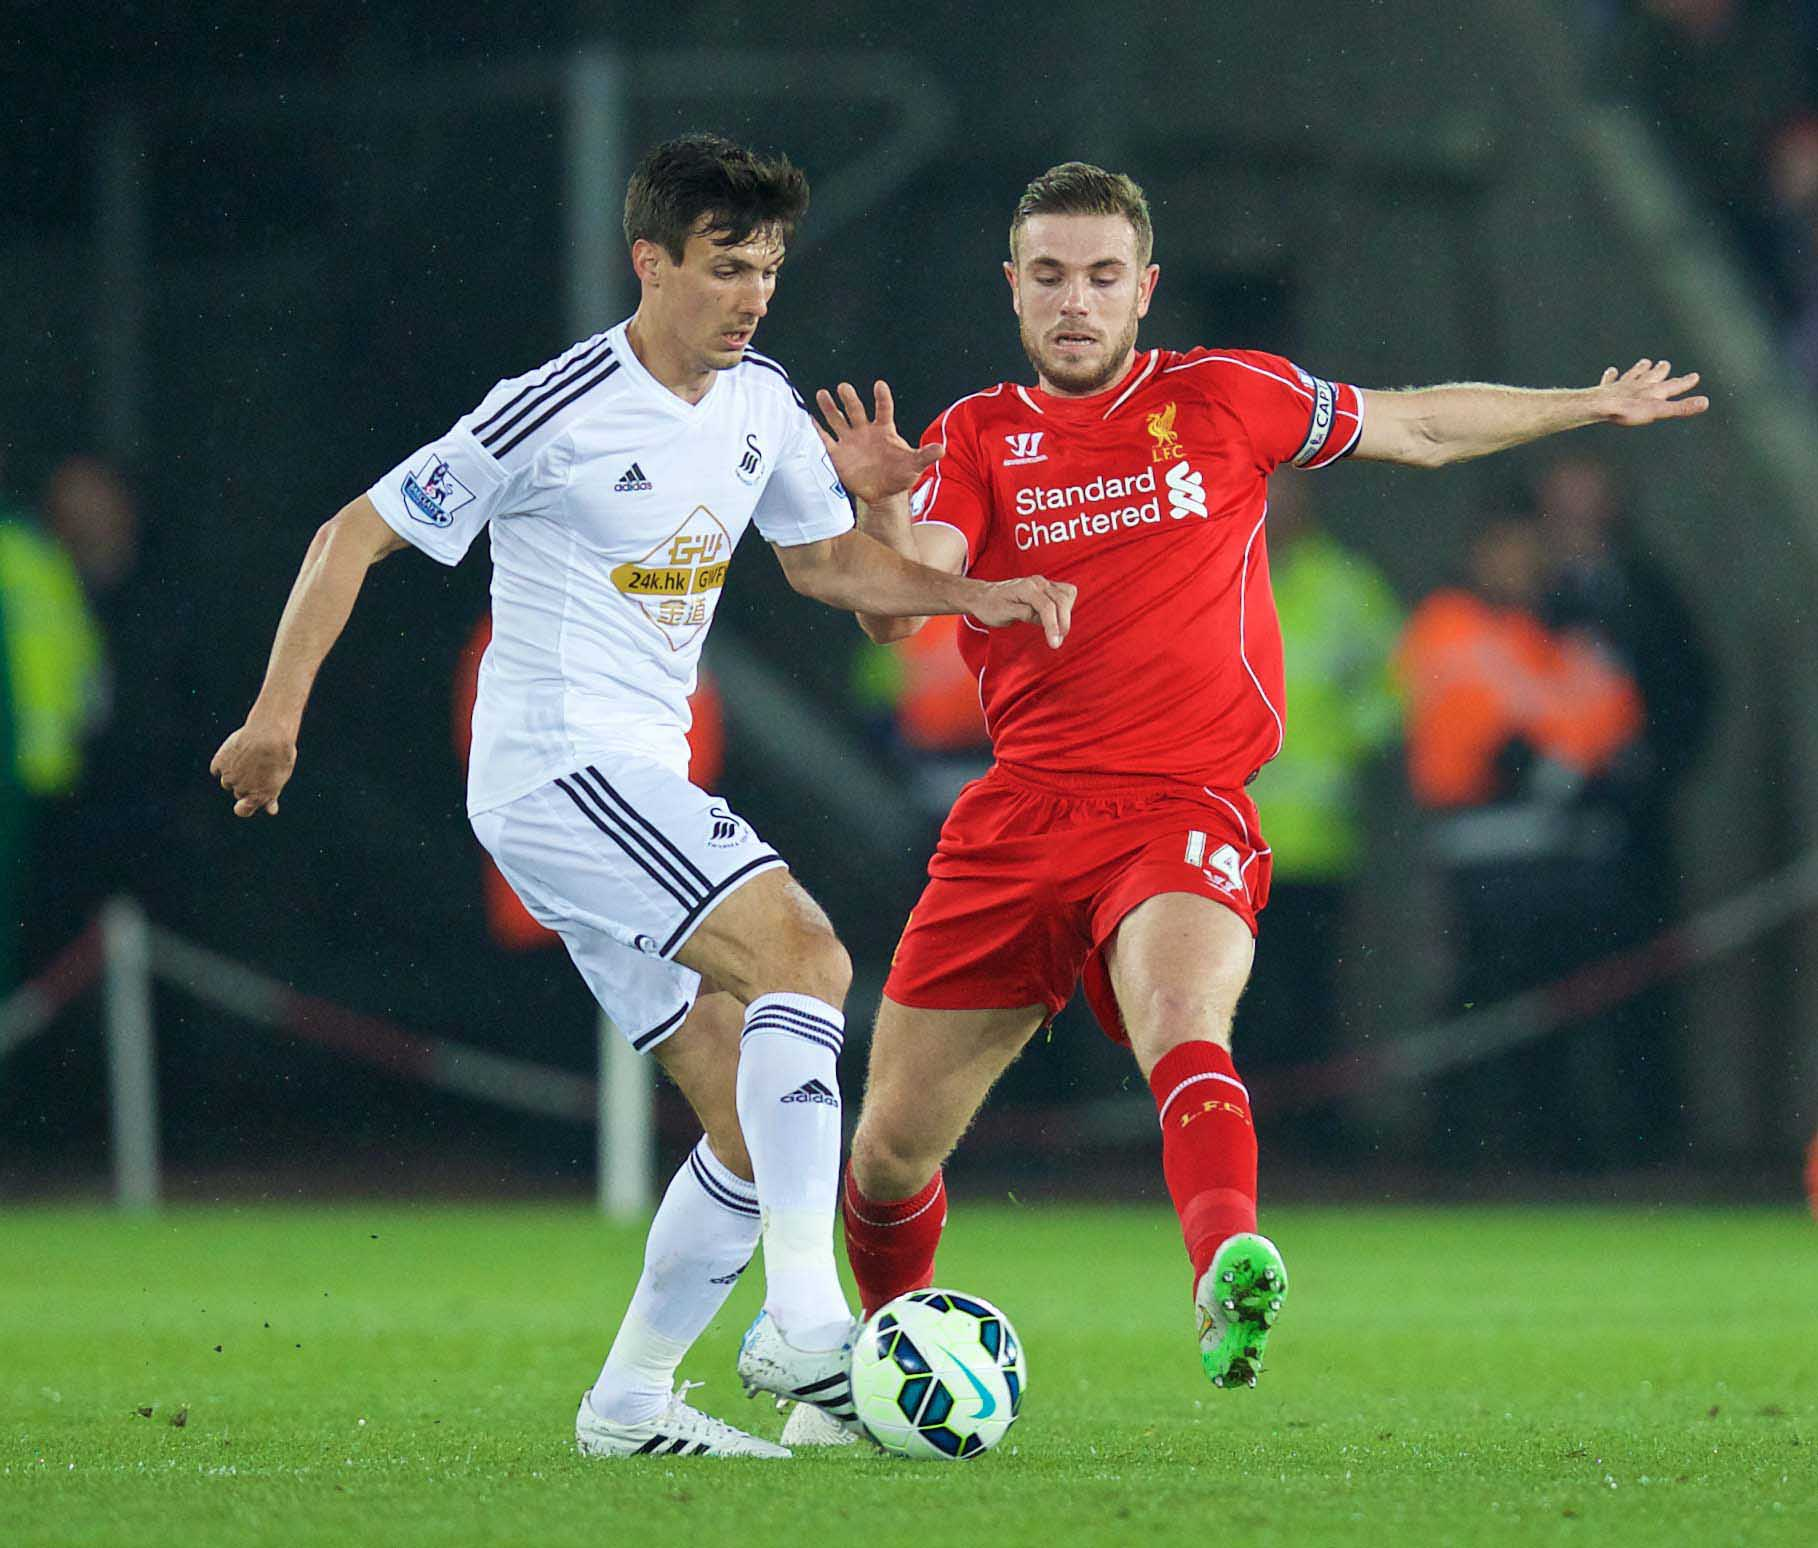 Football - FA Premier League - Swansea City FC v Liverpool FC